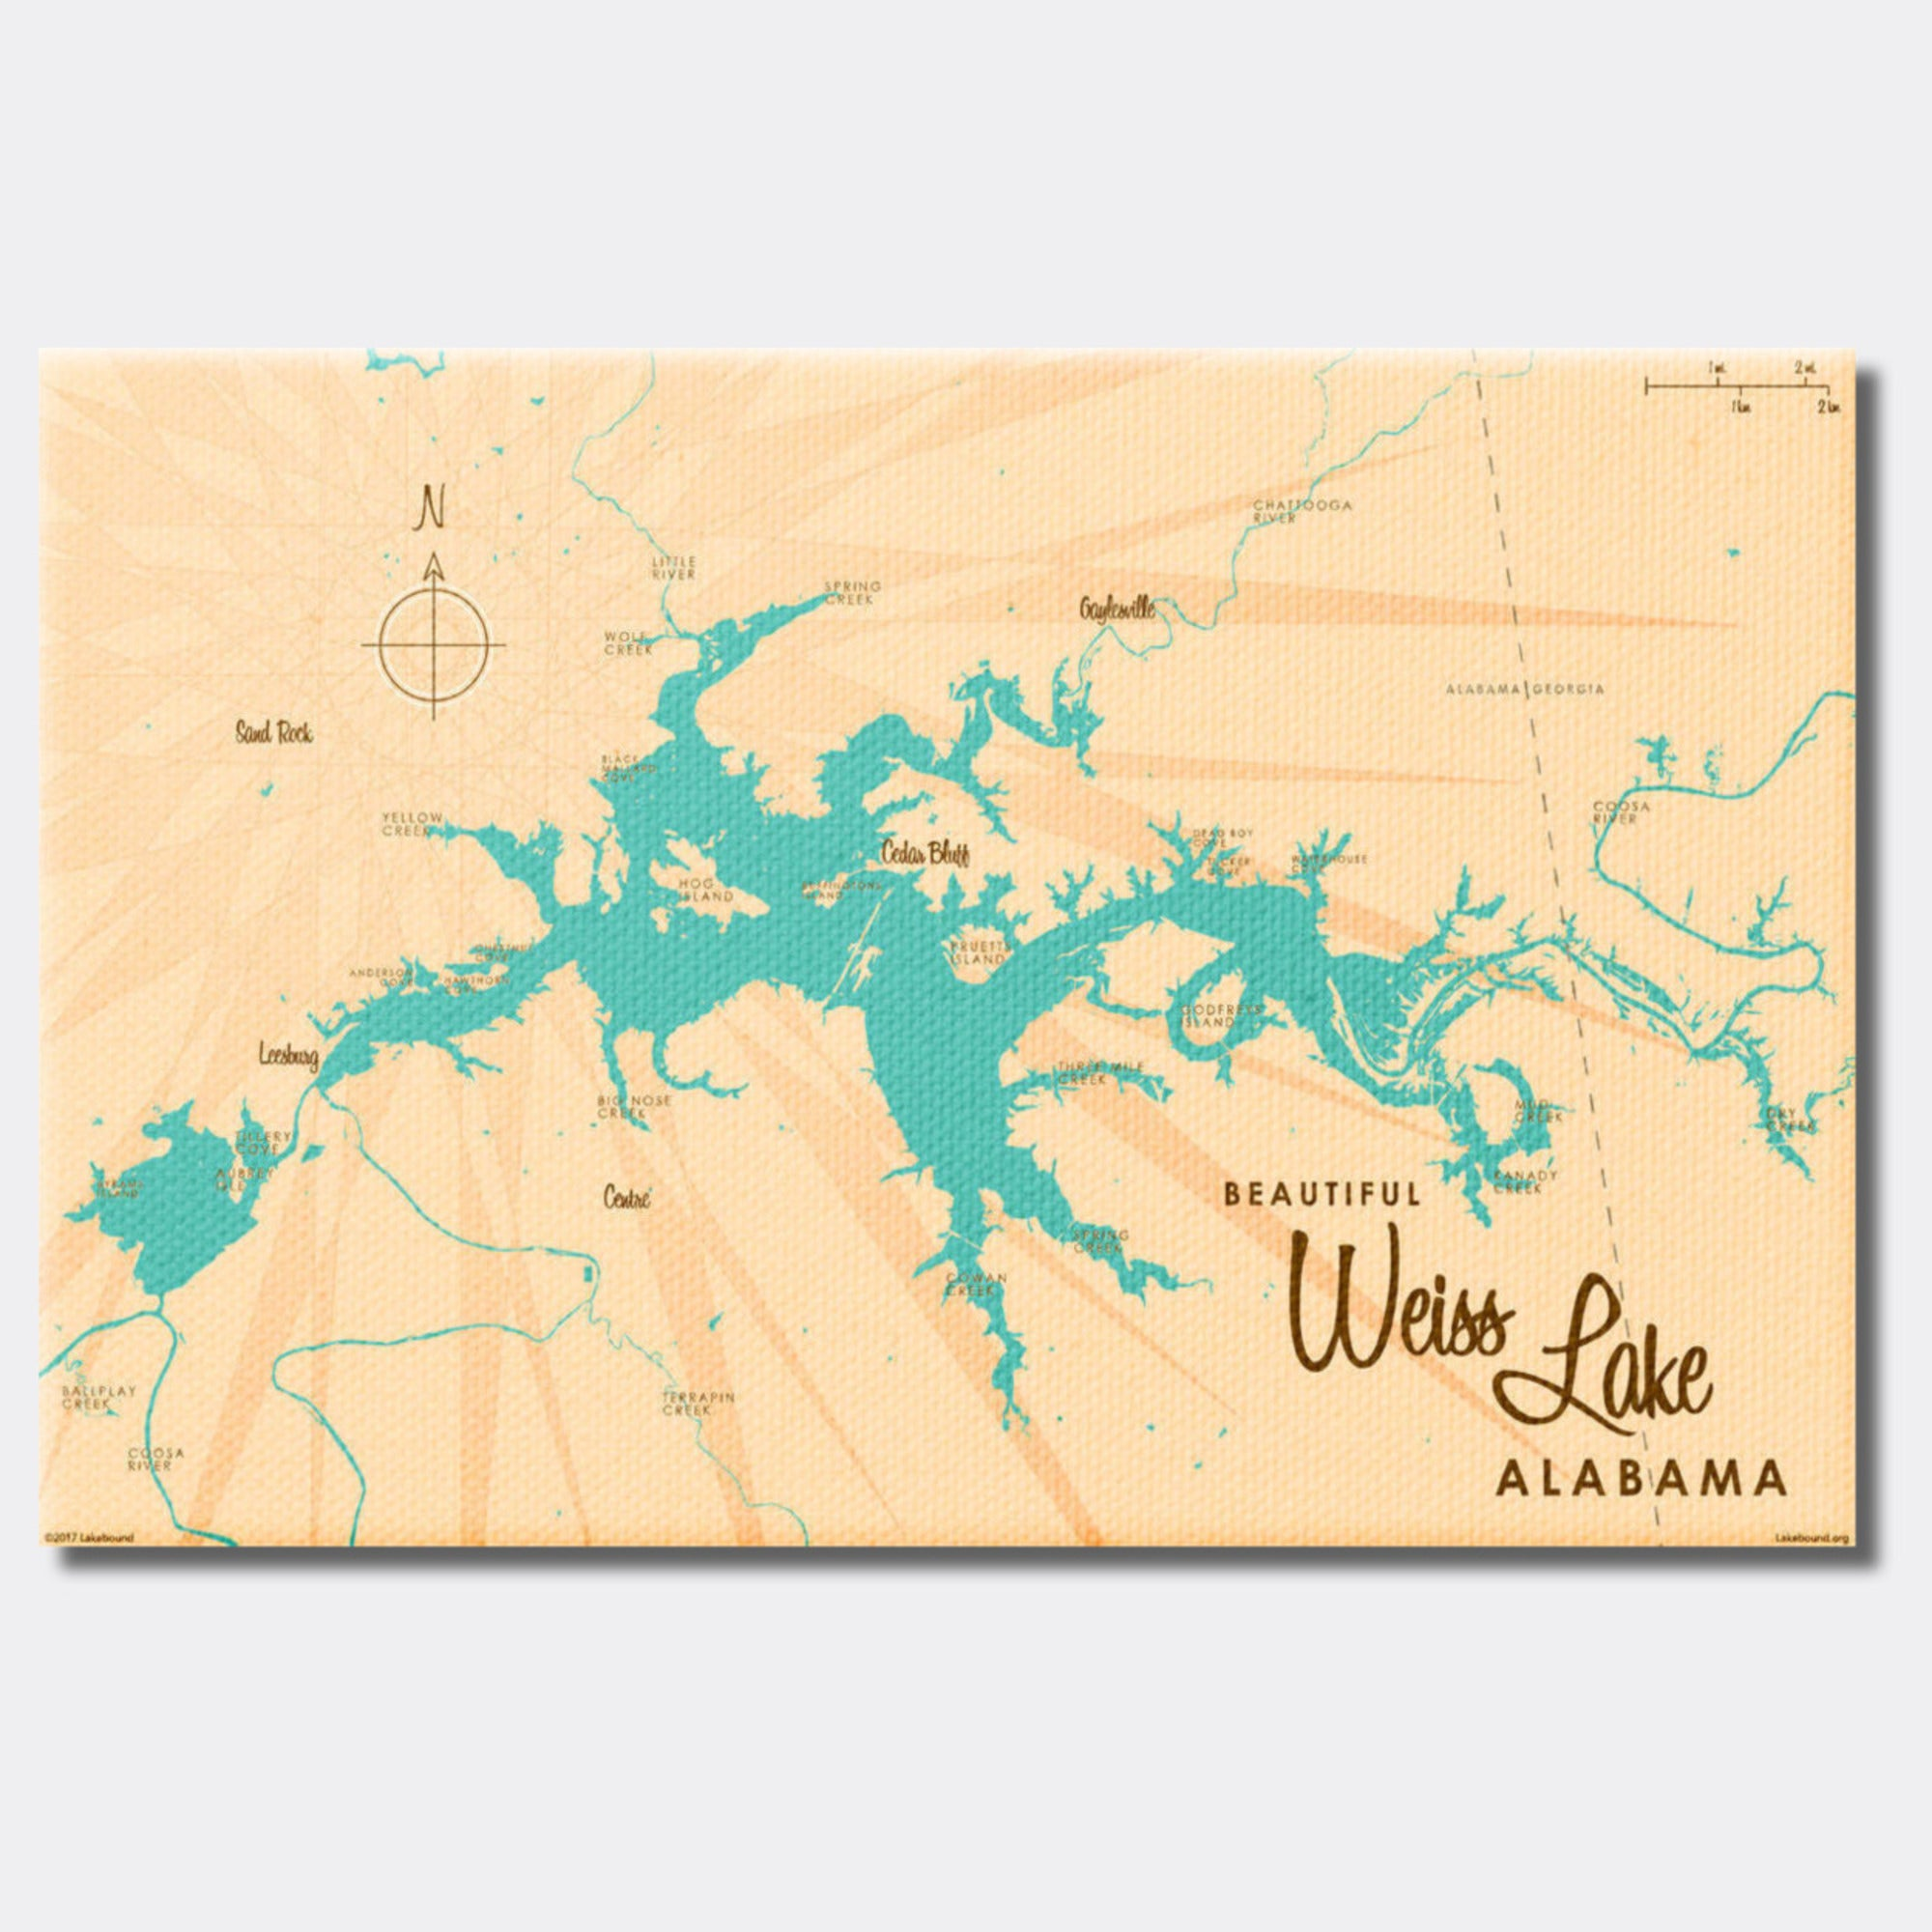 Weiss Lake Alabama, Canvas Print